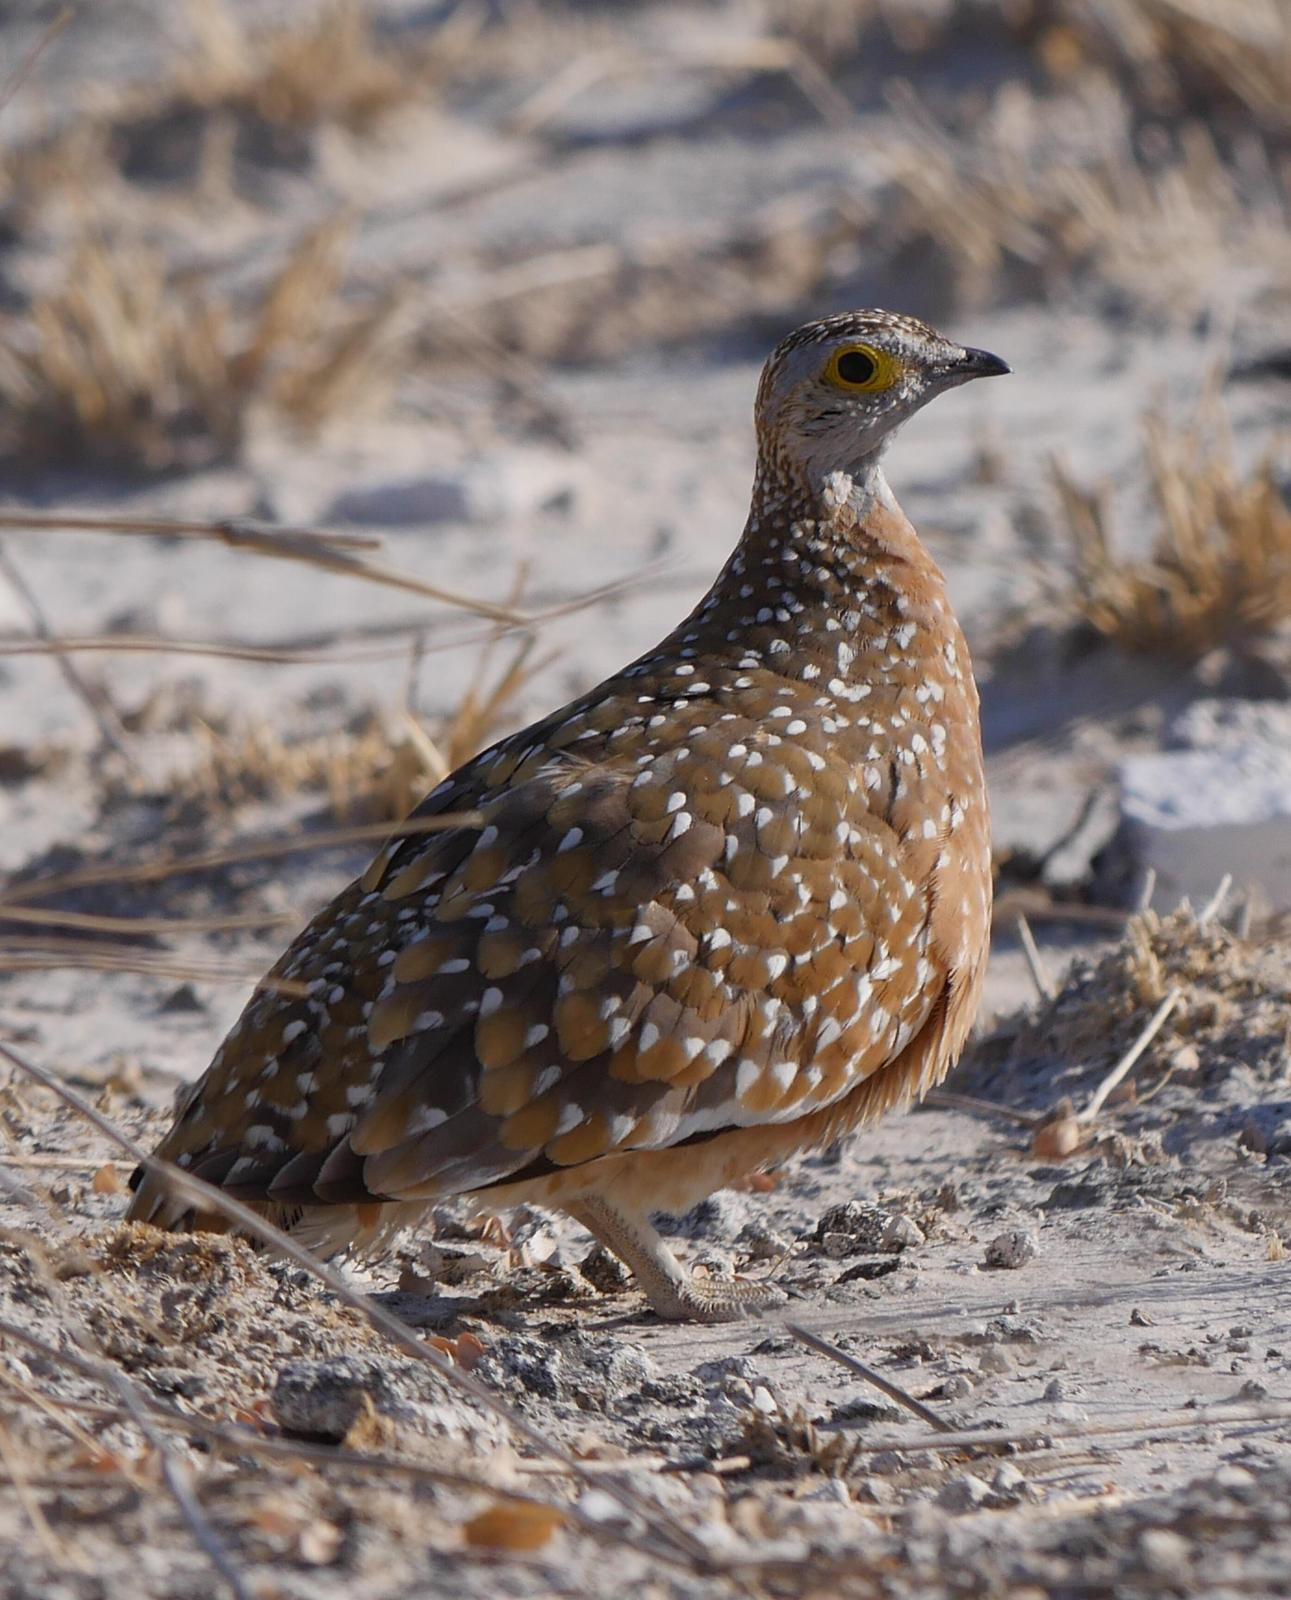 Burchell's Sandgrouse Photo by Peter Lowe